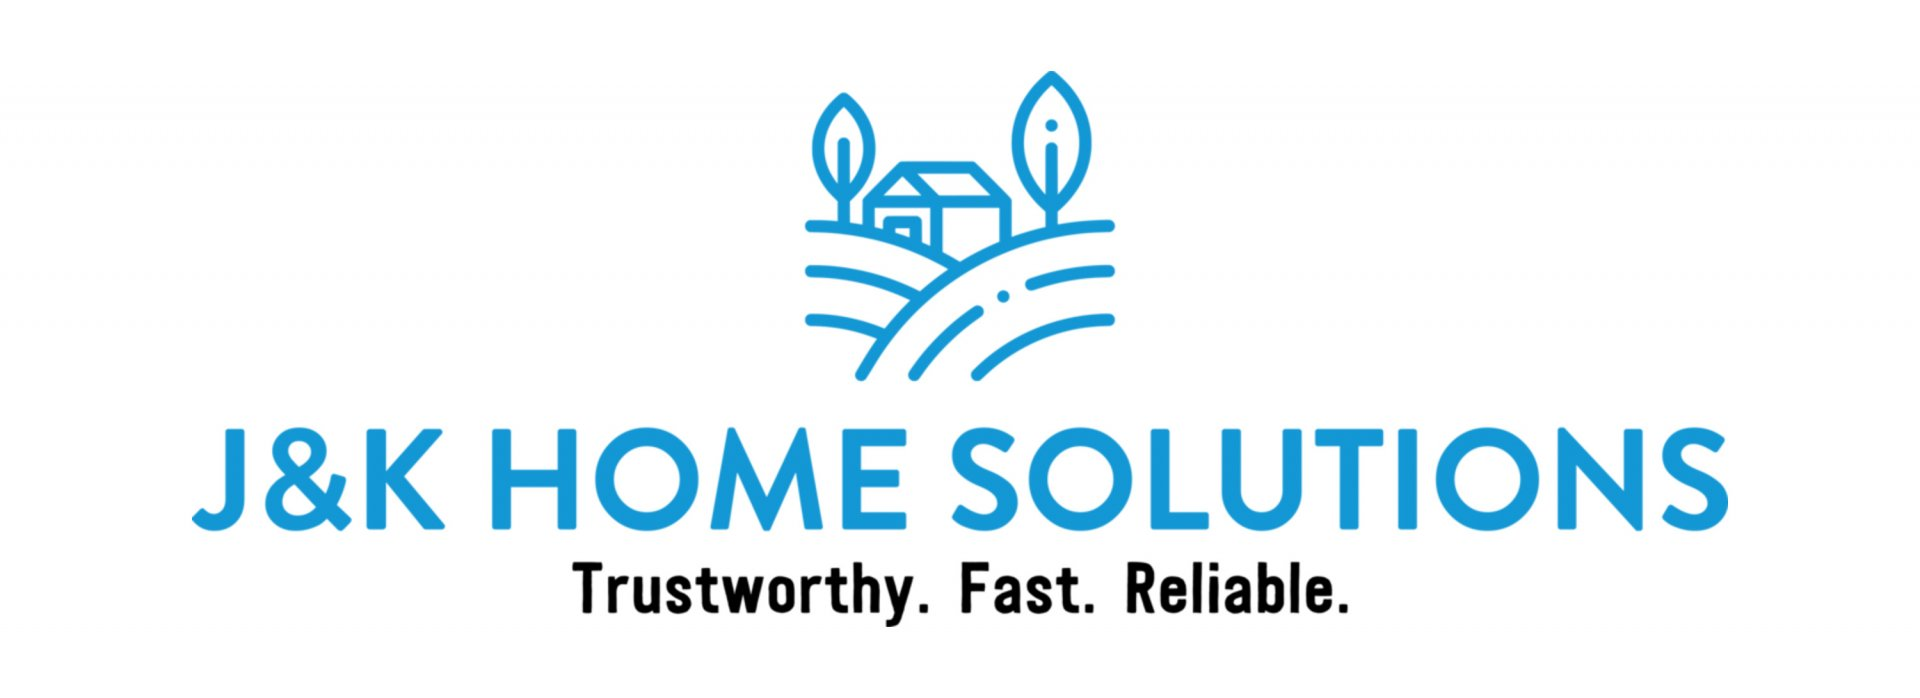 J&K Home Solutions logo